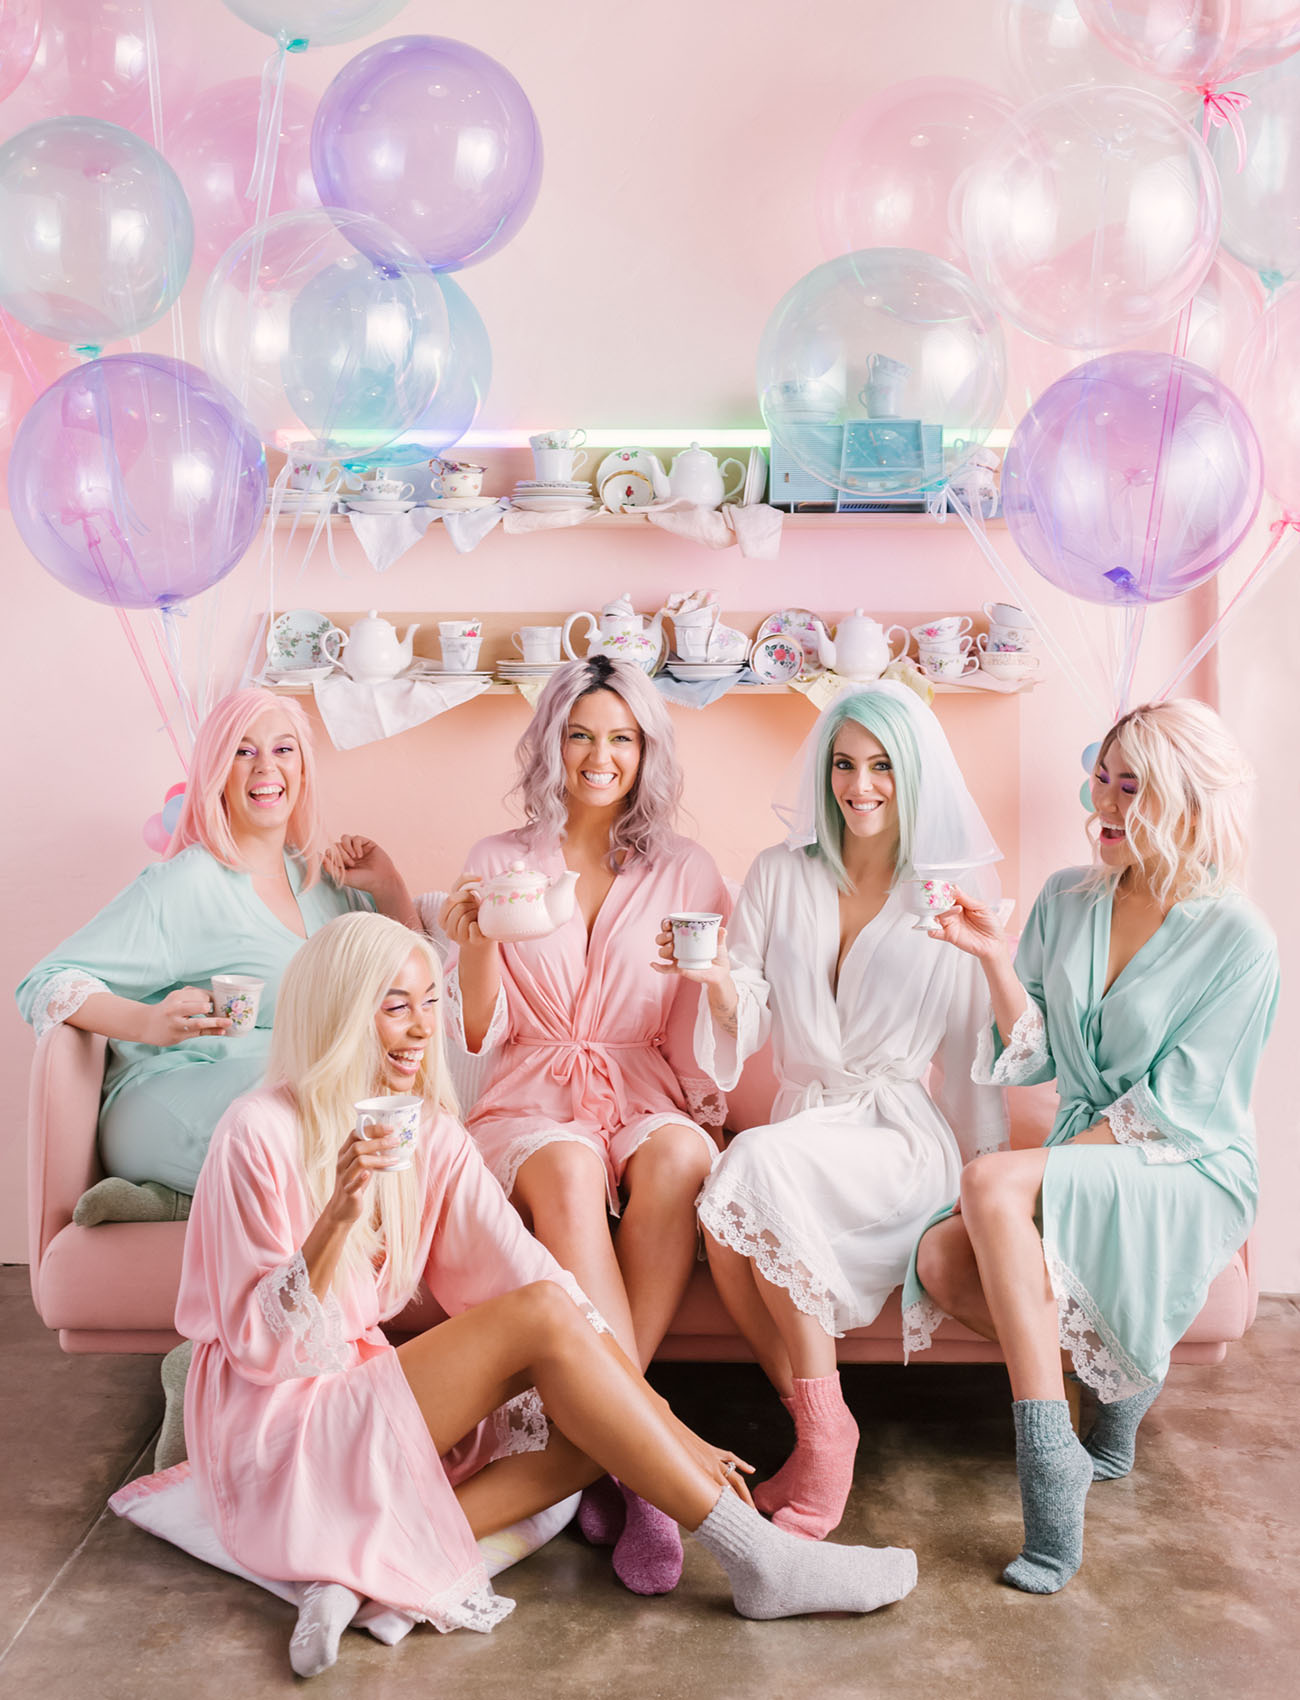 This Pastel Bridal Tea Party is Cotton-Candy Bubblegum-Pop Dreams!